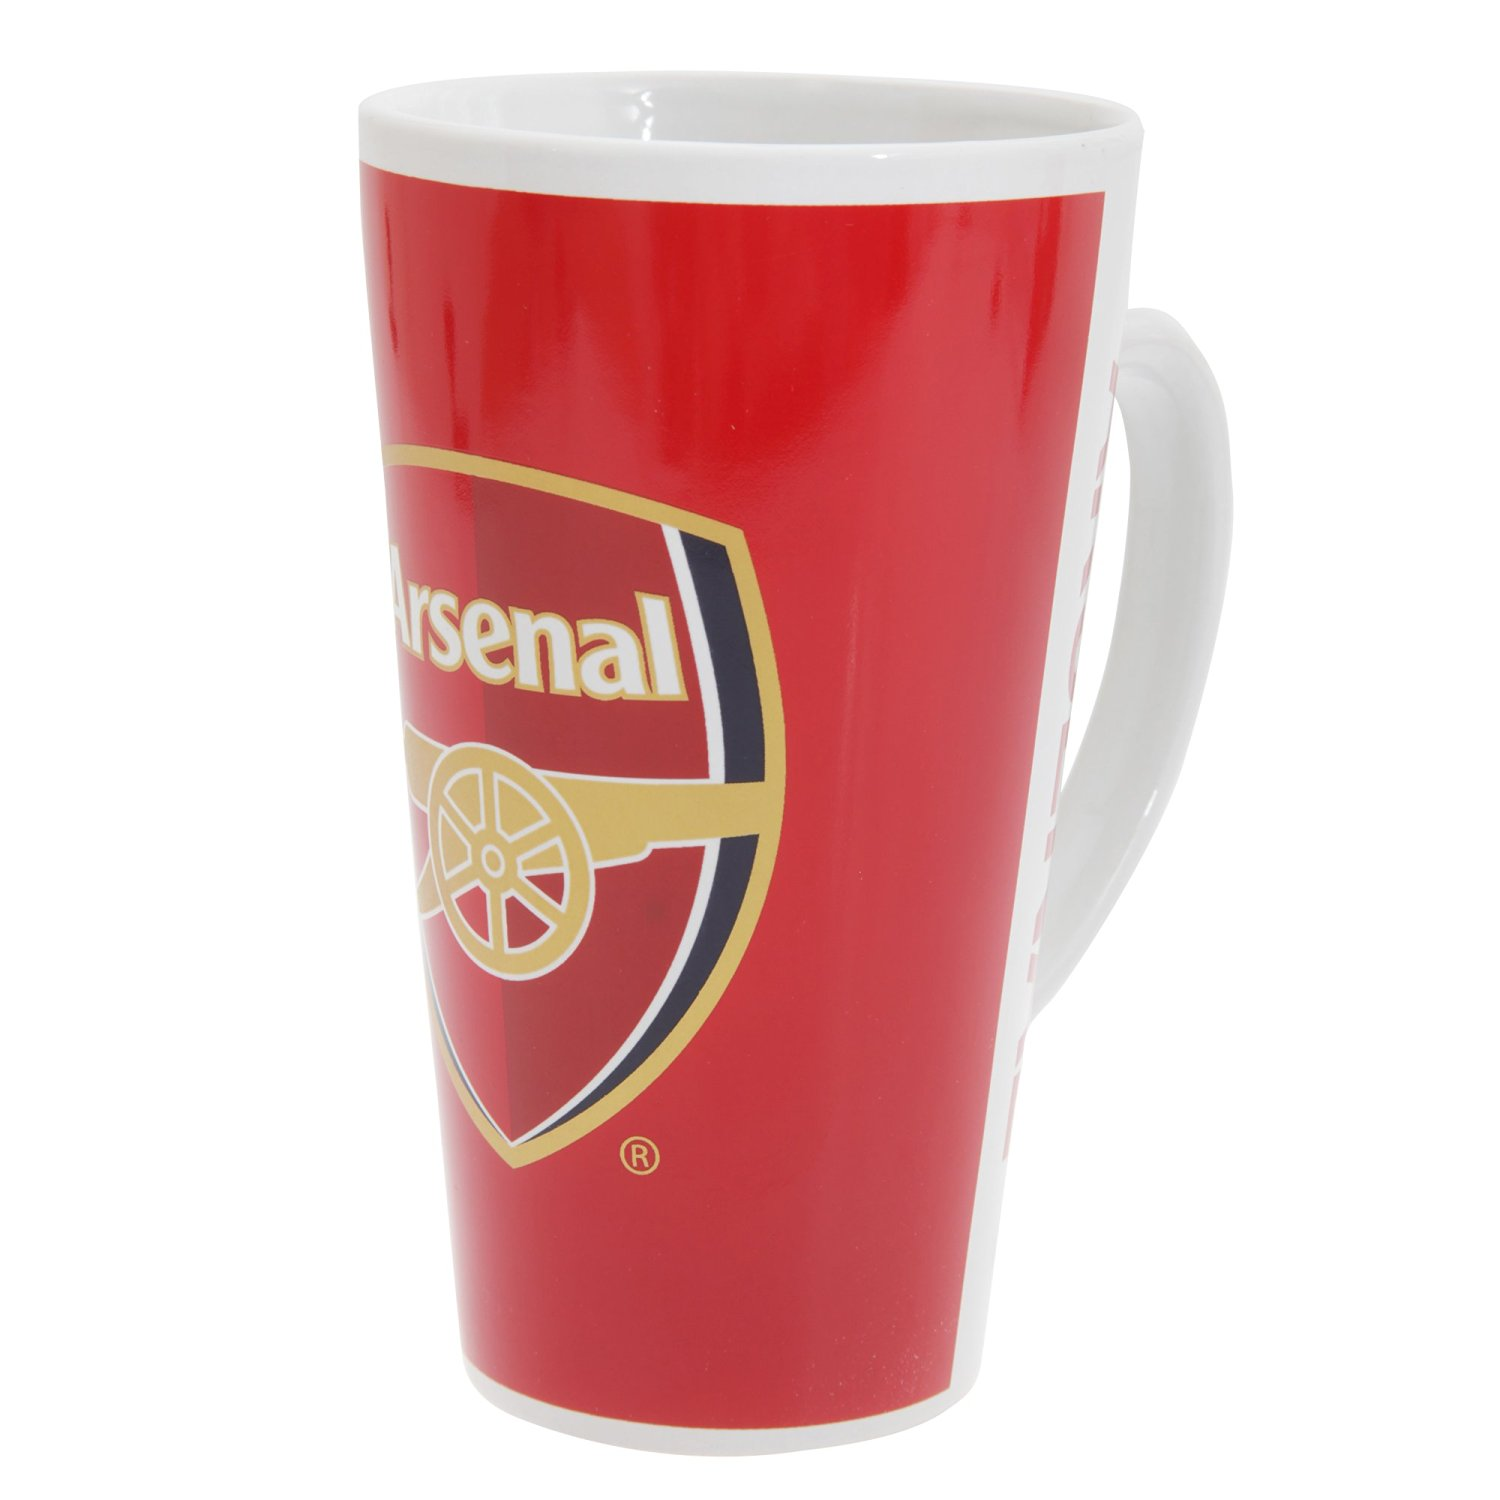 Official Arsenal FC Latte Mug with Crest